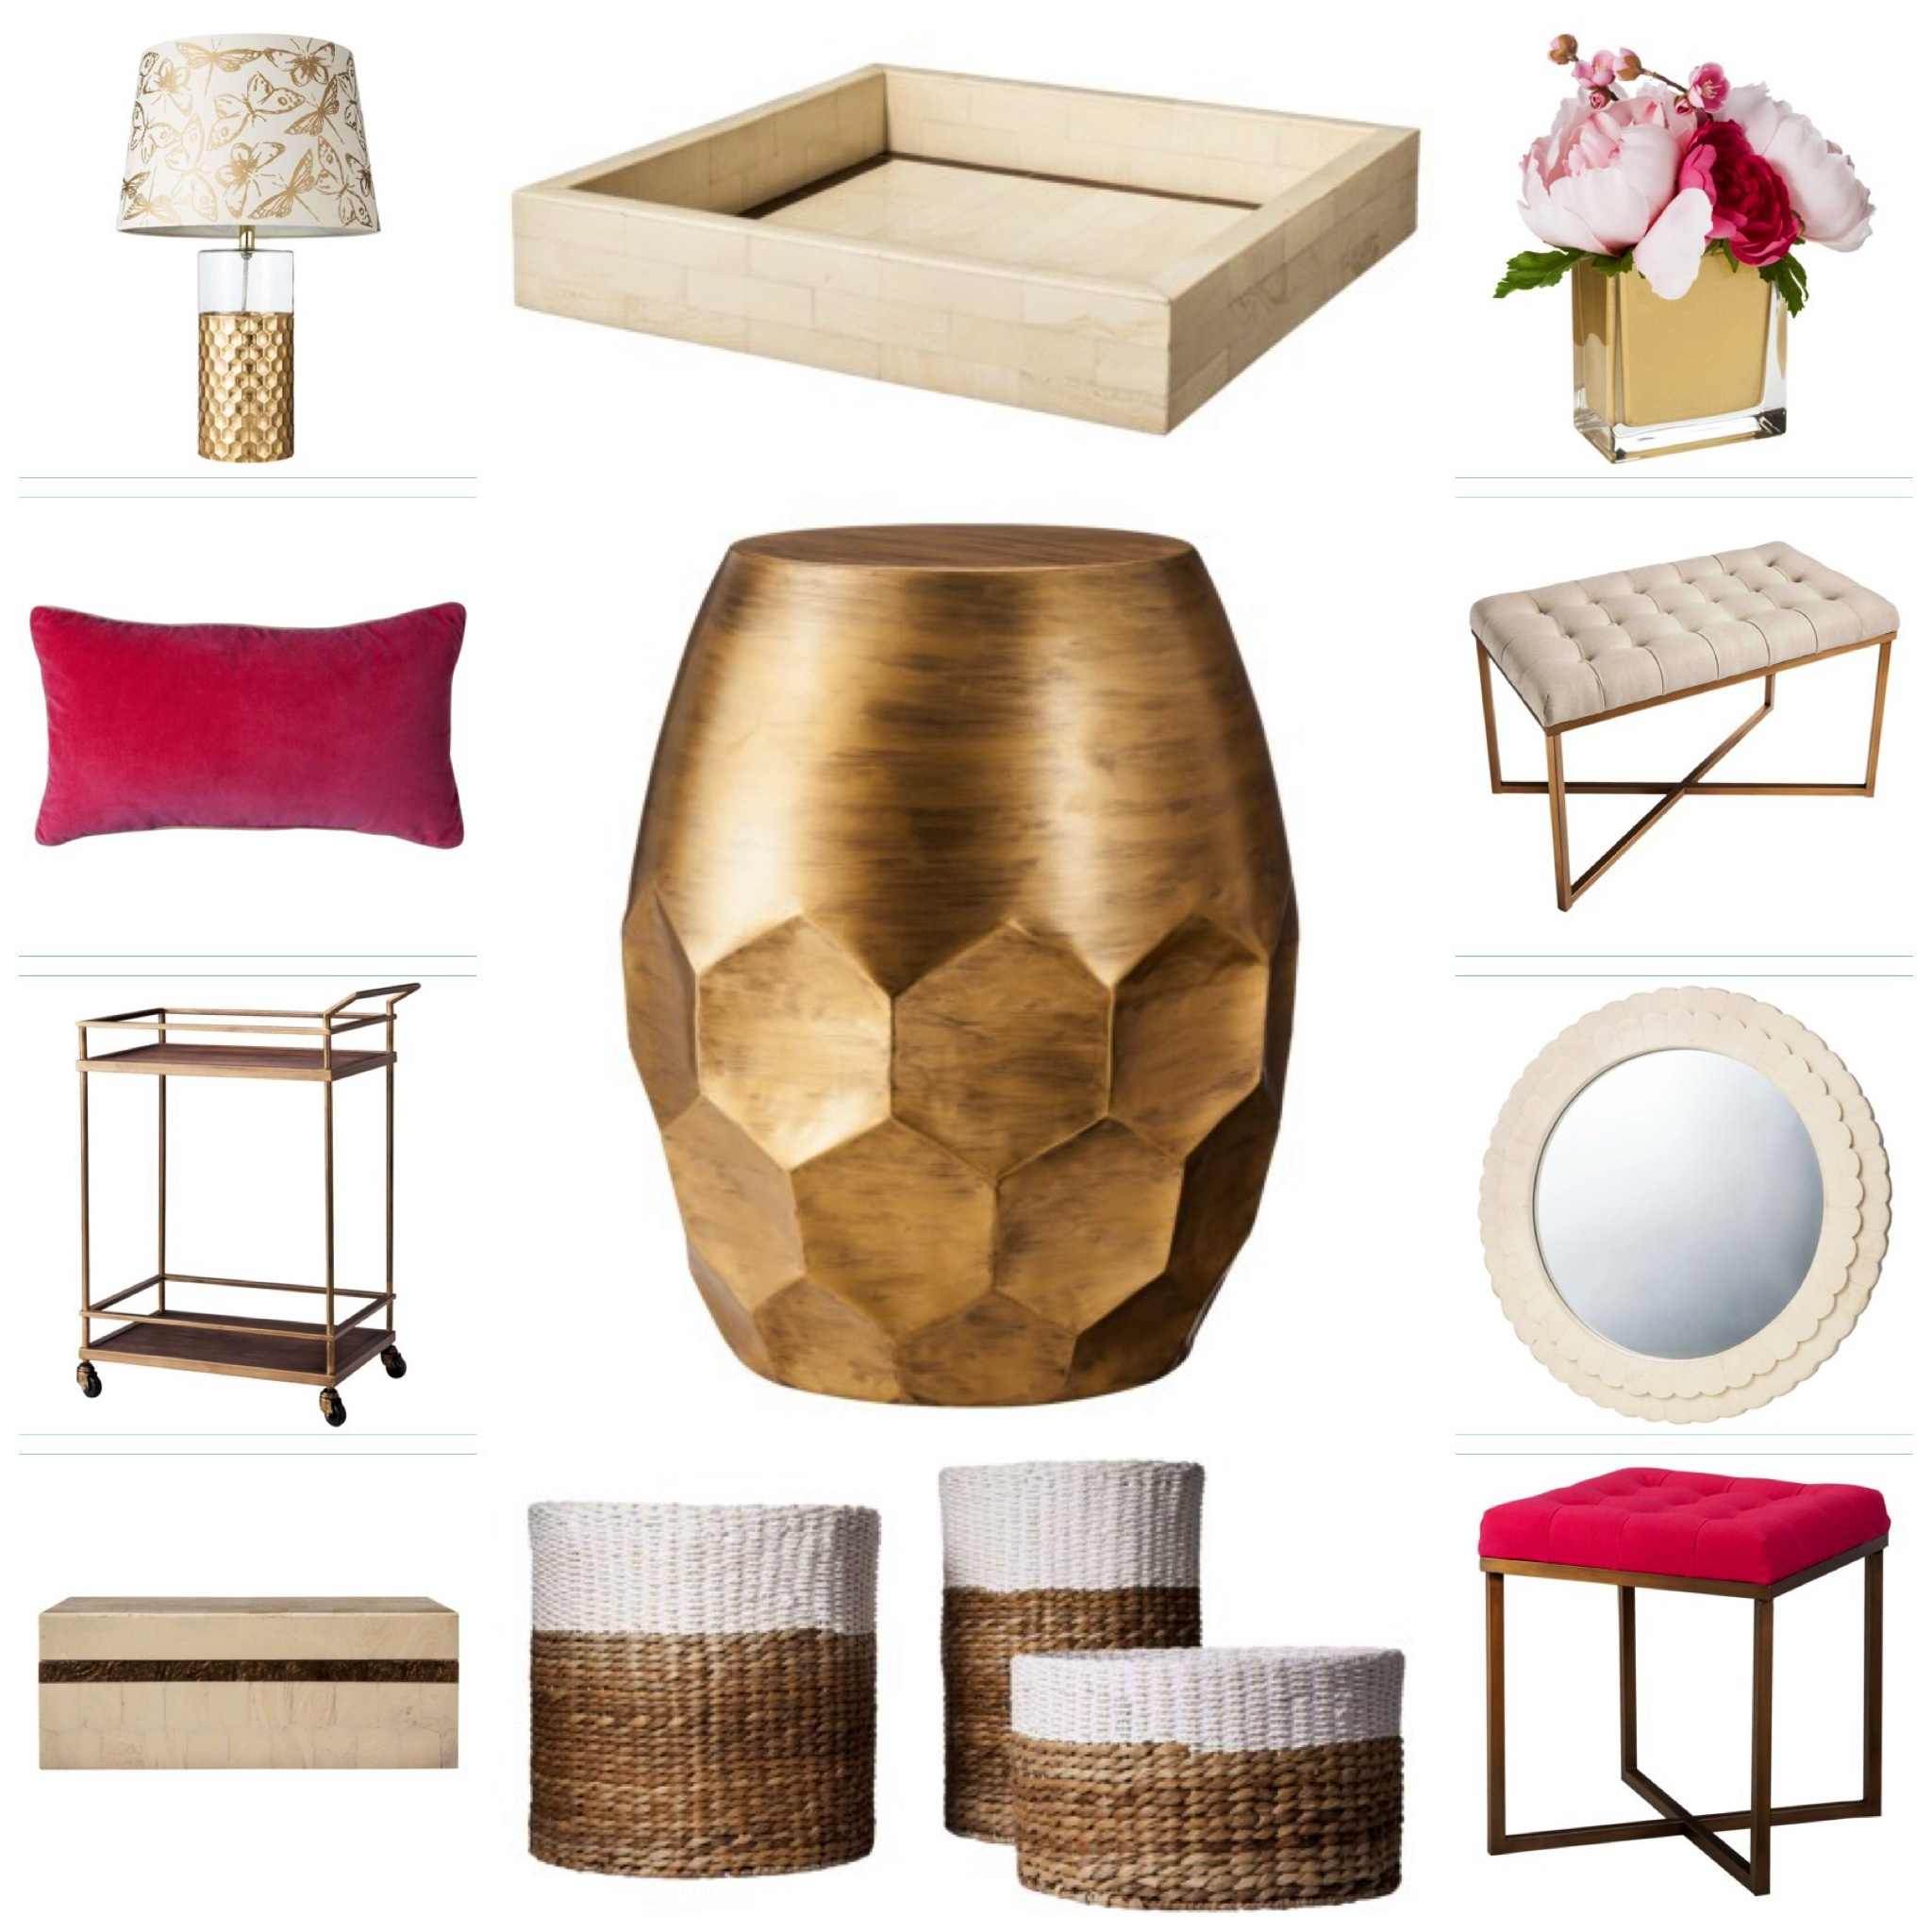 what your threshold new spring collection for target out gold accent table honeycomb foiled lamp with butterfly decorative accessories cherry finish end tables small side marble